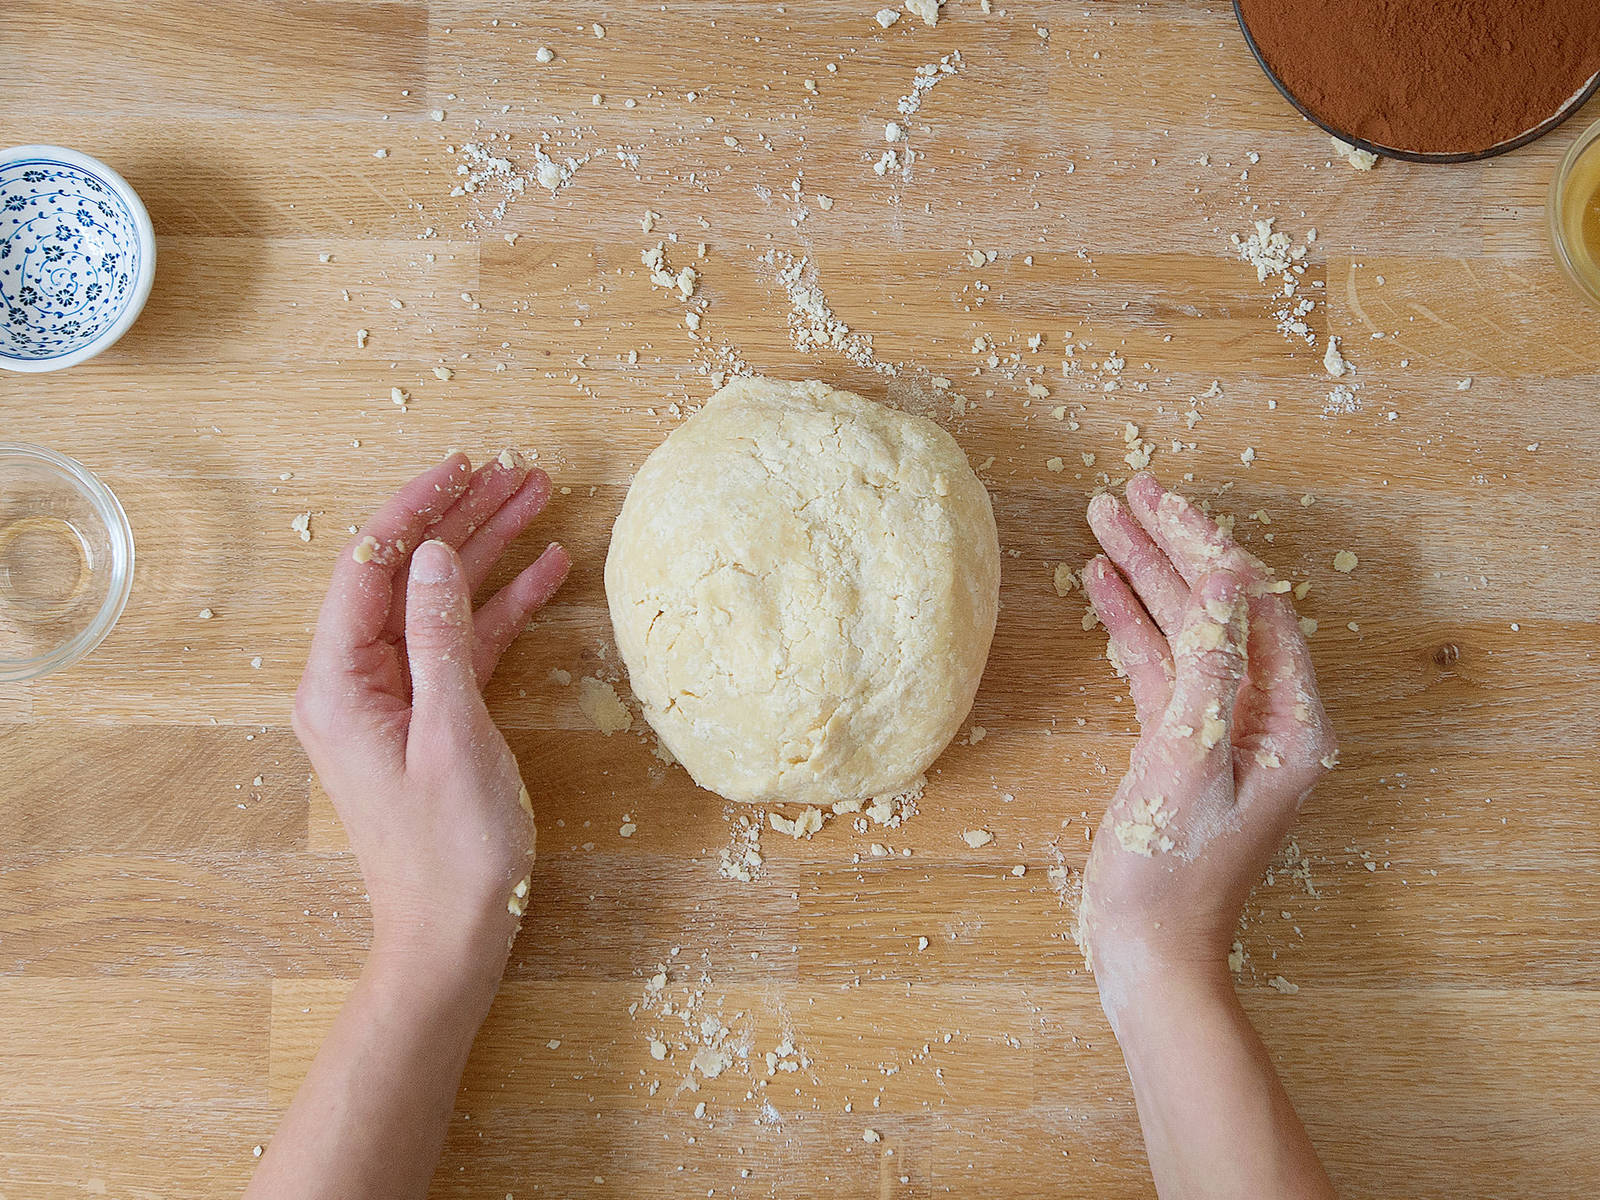 In a large bowl, combine spelt flour, some of the margarine, some of the rice syrup, vodka, and salt until dough is smooth and uniform in consistency. Wrap dough in plastic wrap and transfer to refrigerator. Allow to set for approx. 30 min.